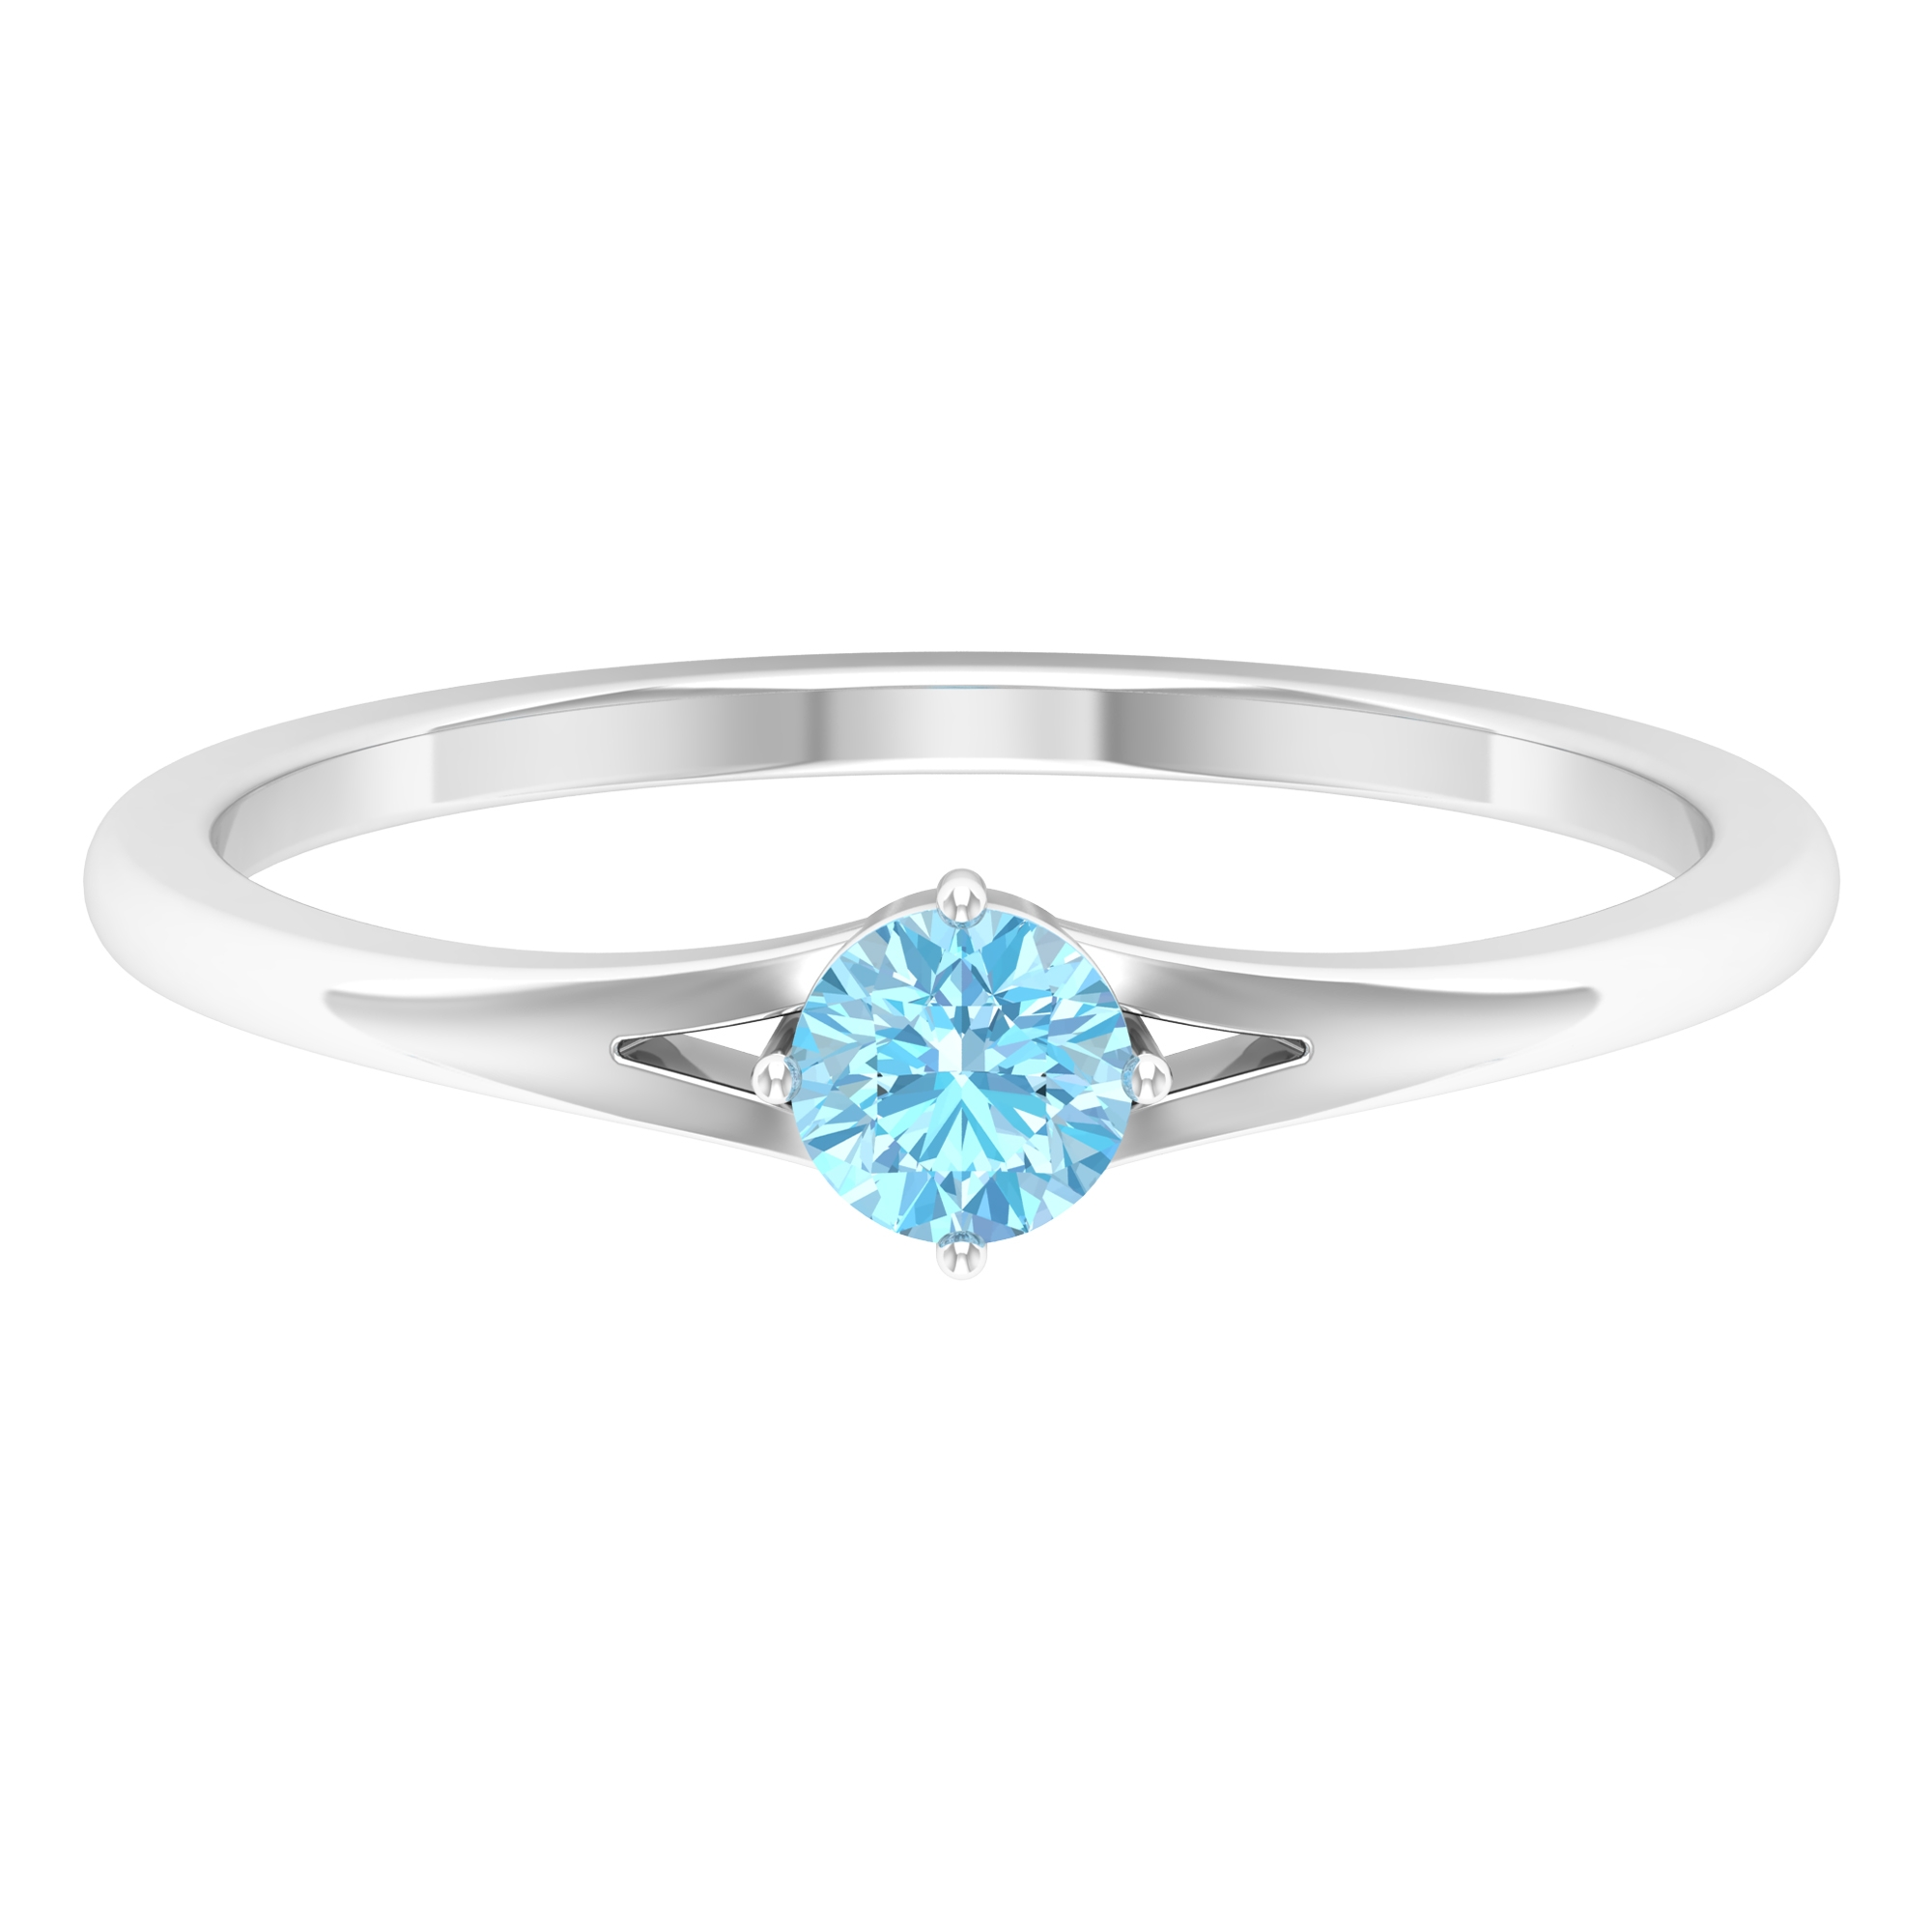 4 MM Round Shape Solitaire Aquamarine Split Shank Ring in 4 Prong Diagonal Setting